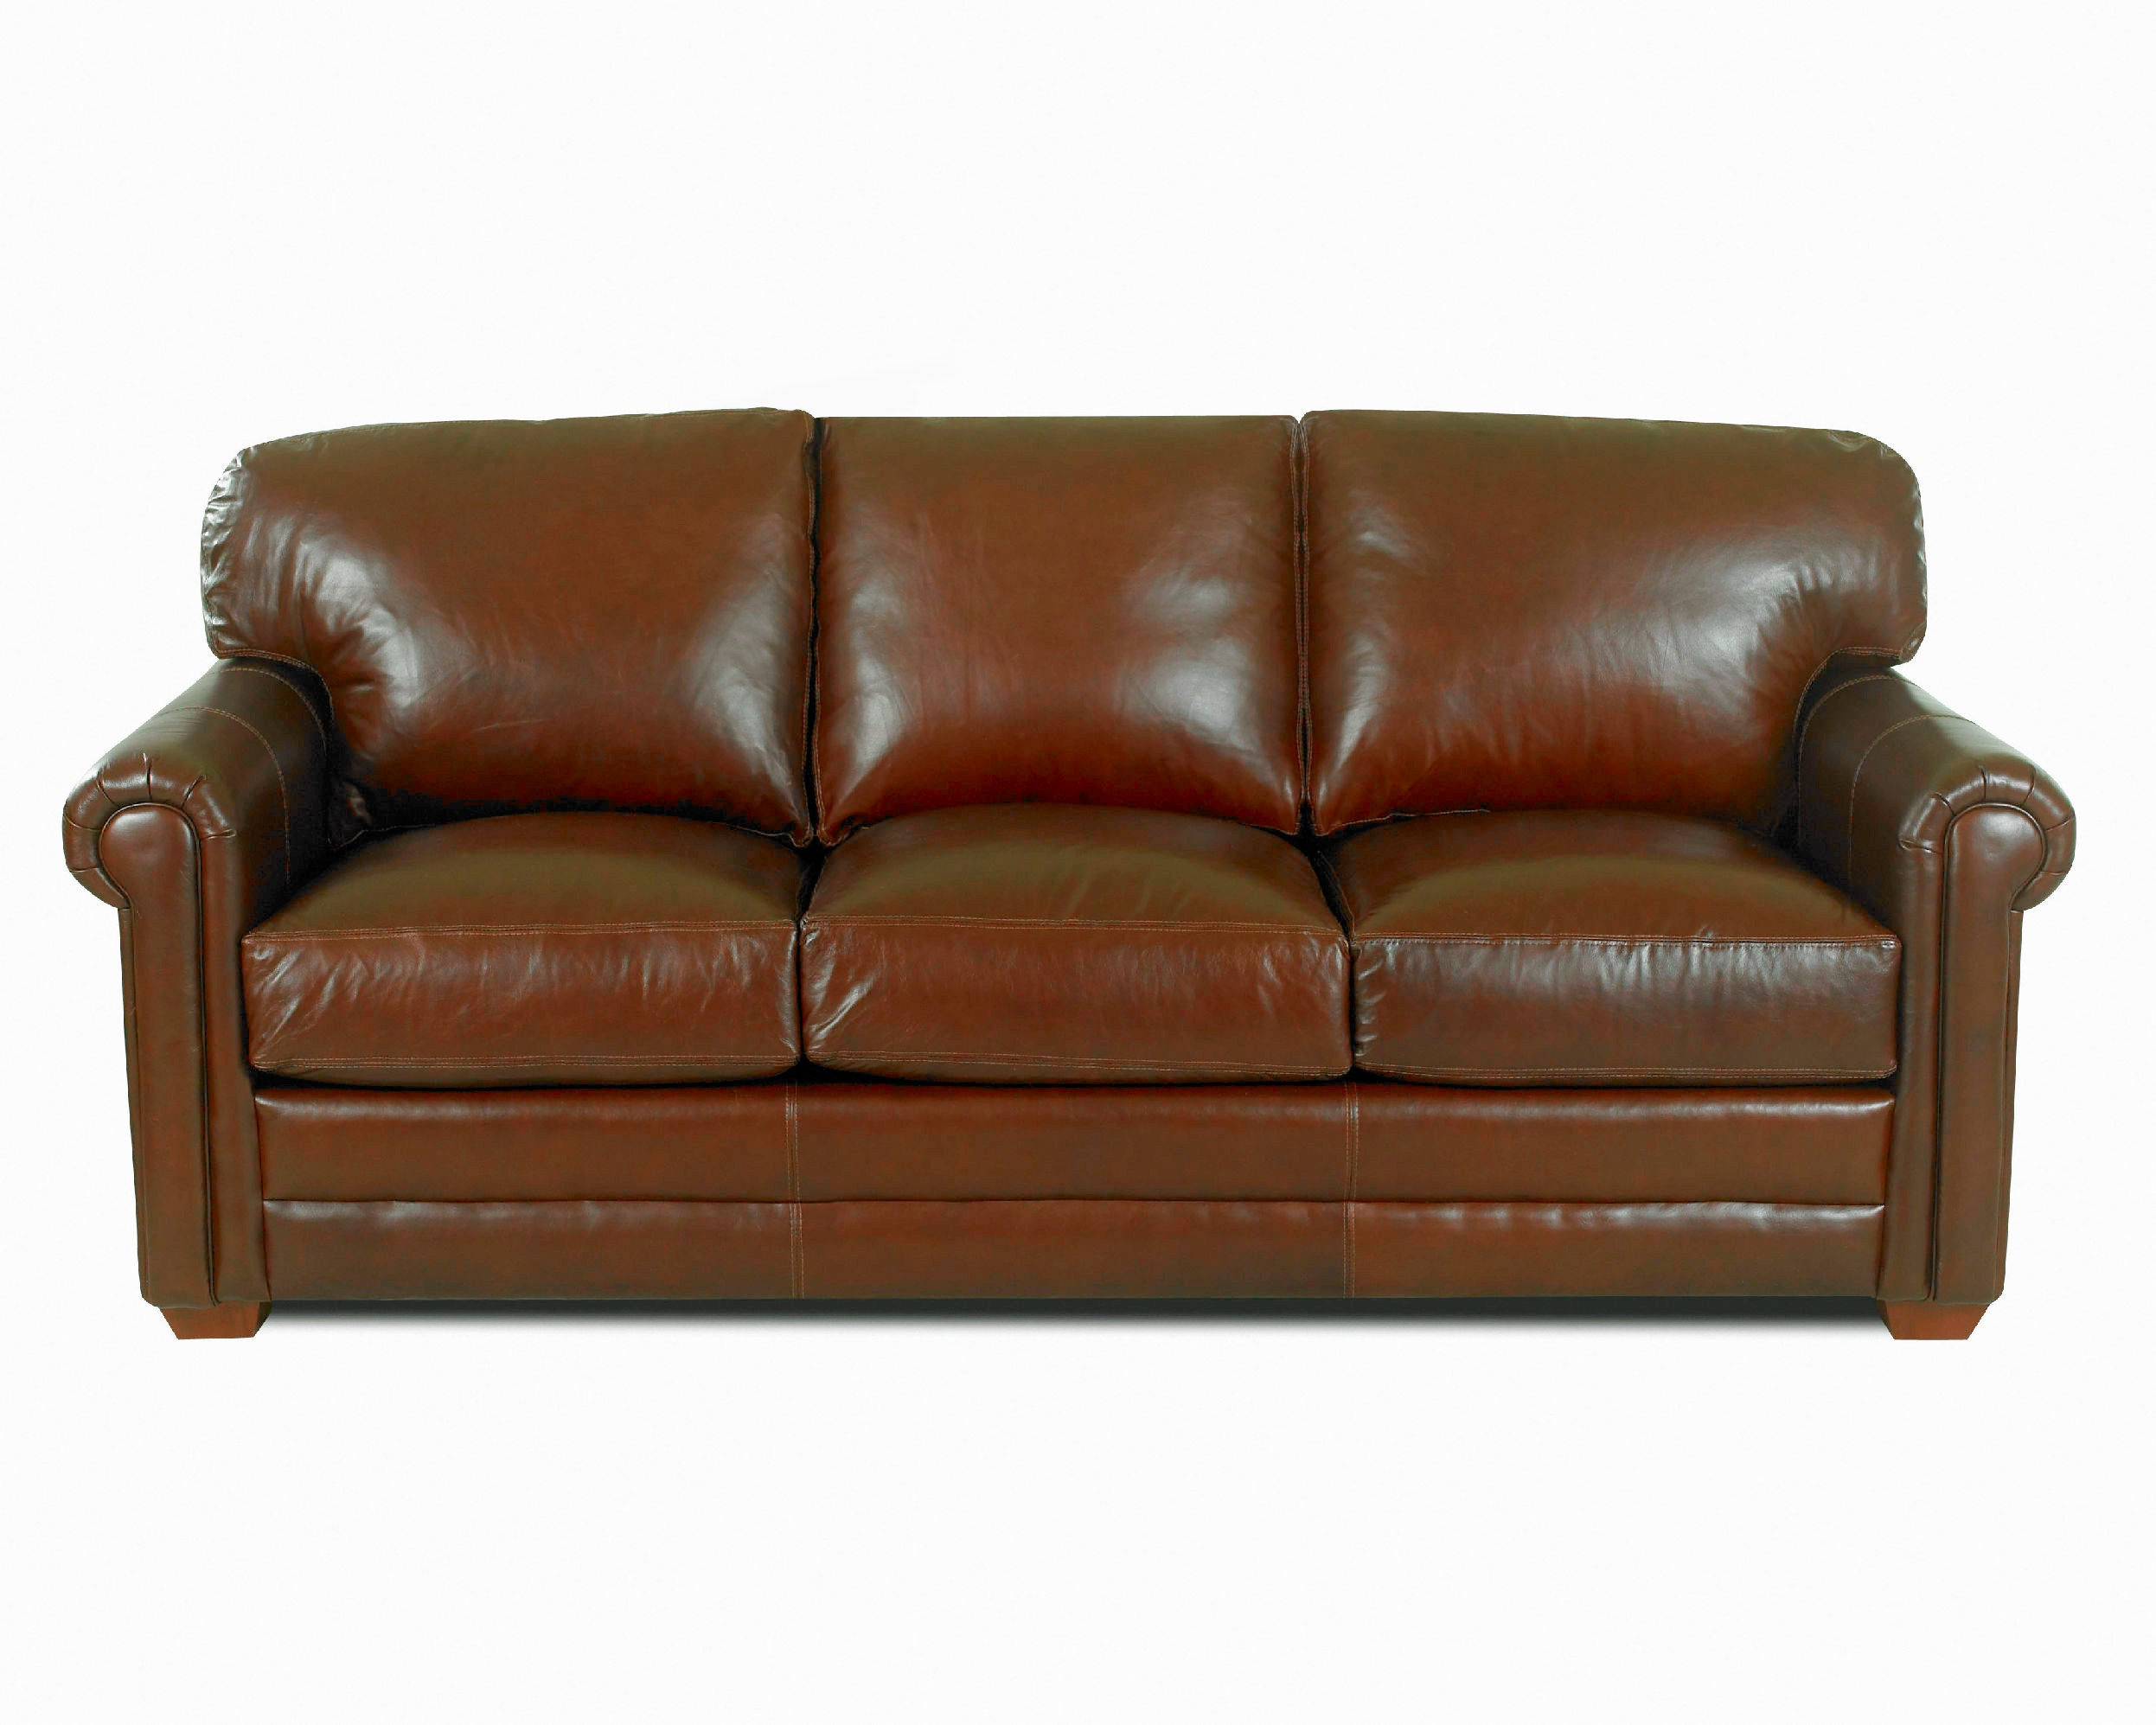 Klaussner Living Room Cassidy Ld74700 S Sofas Unlimited